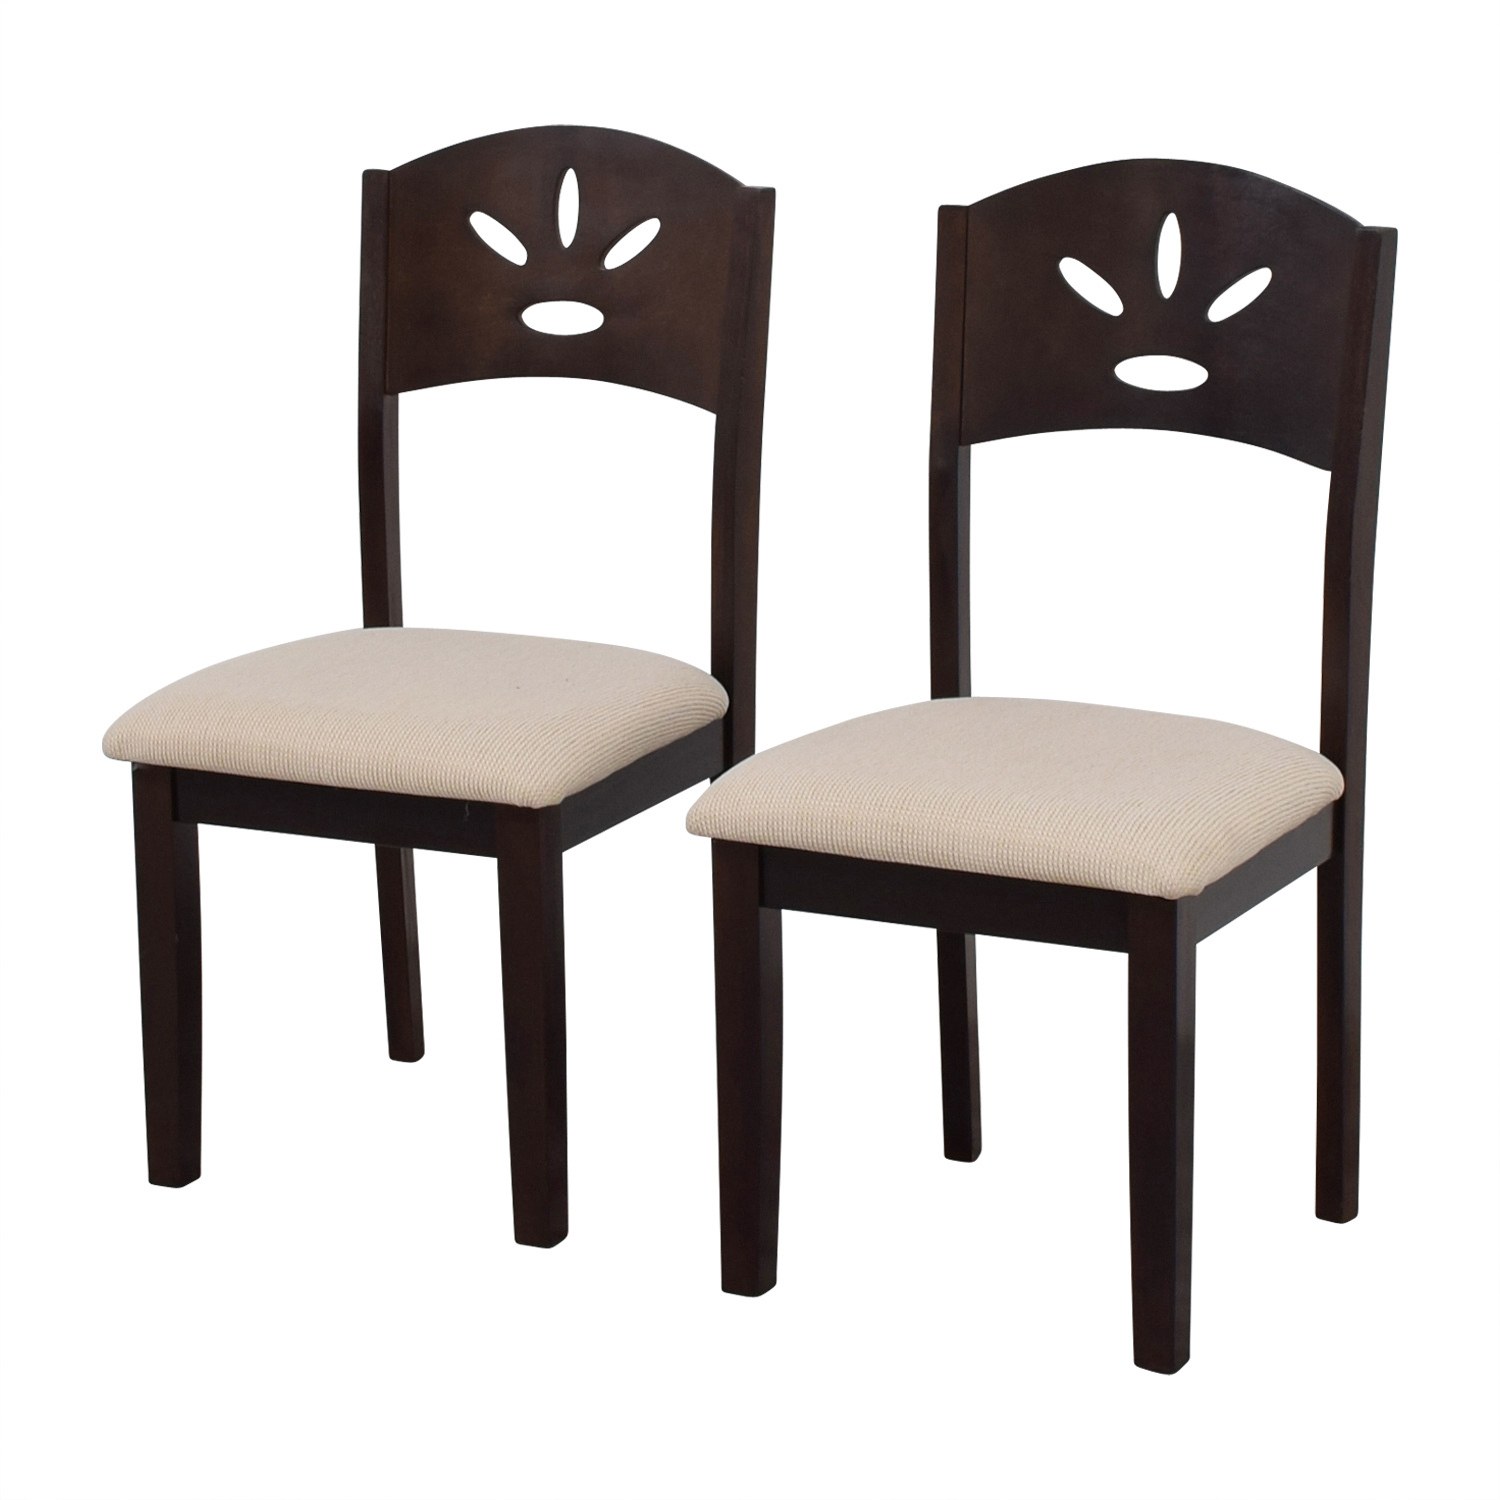 48 off off white and wood dining chairs chairs. Black Bedroom Furniture Sets. Home Design Ideas